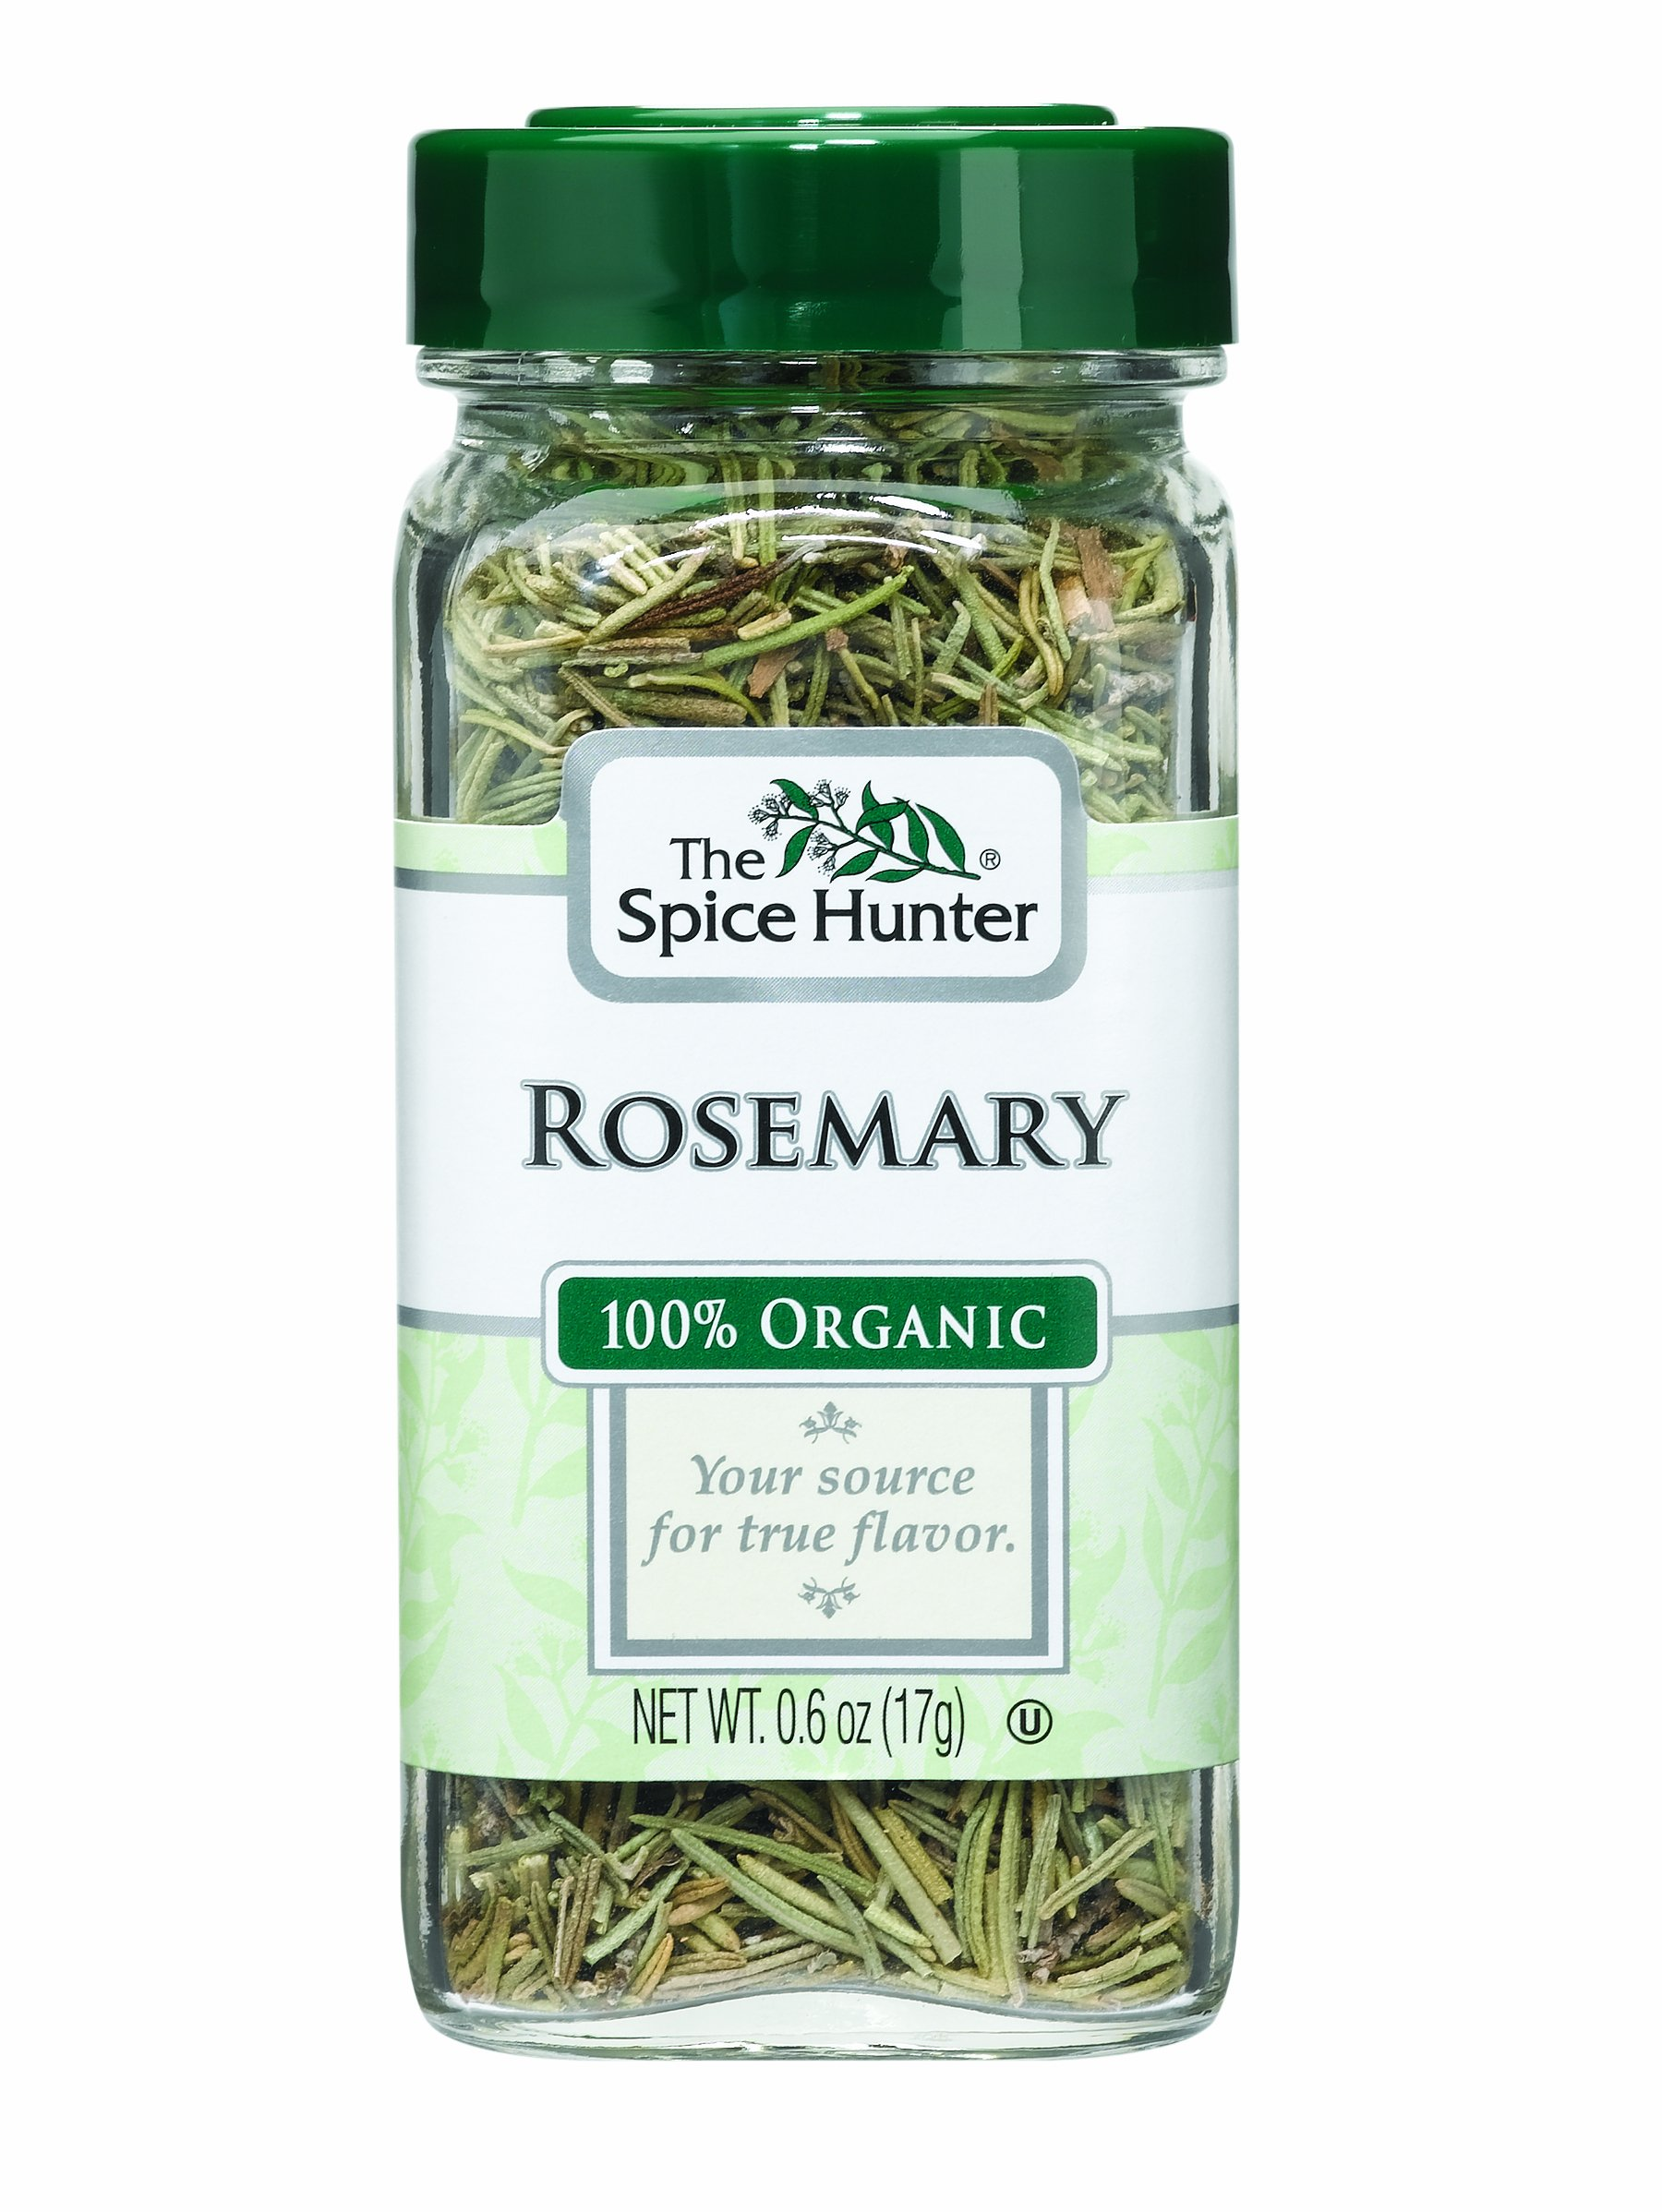 The Spice Hunter Rosemary, Organic, 0.6-Ounce Jars (Pack of 6)